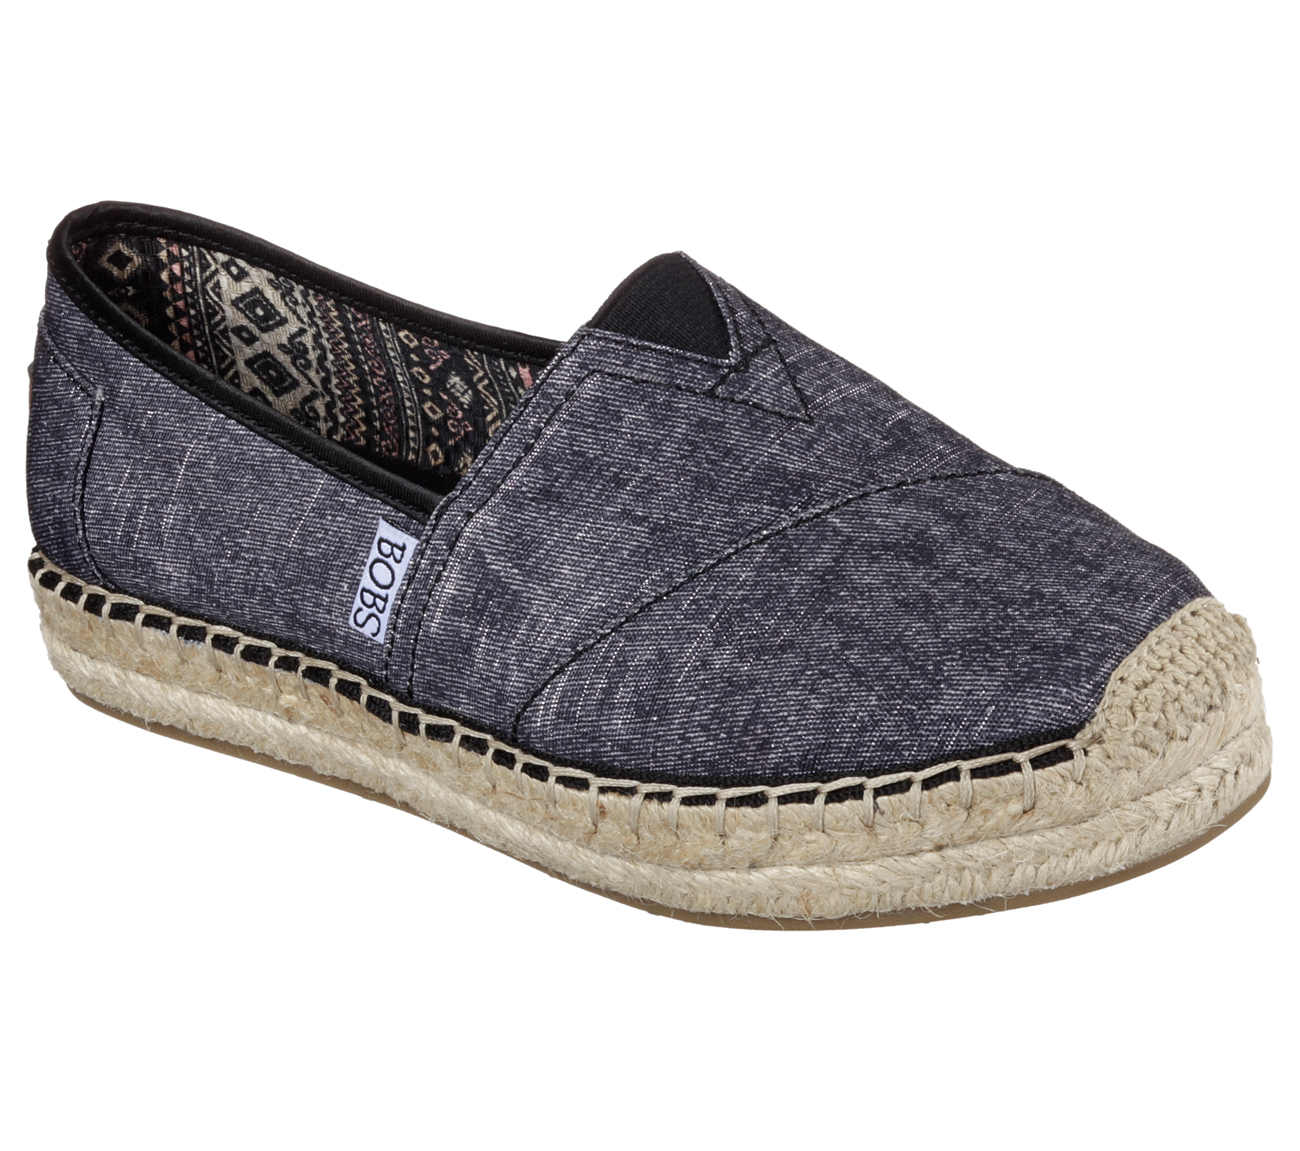 Buy Skechers Bobs Lowlights Bobs Shoes Only 50 00